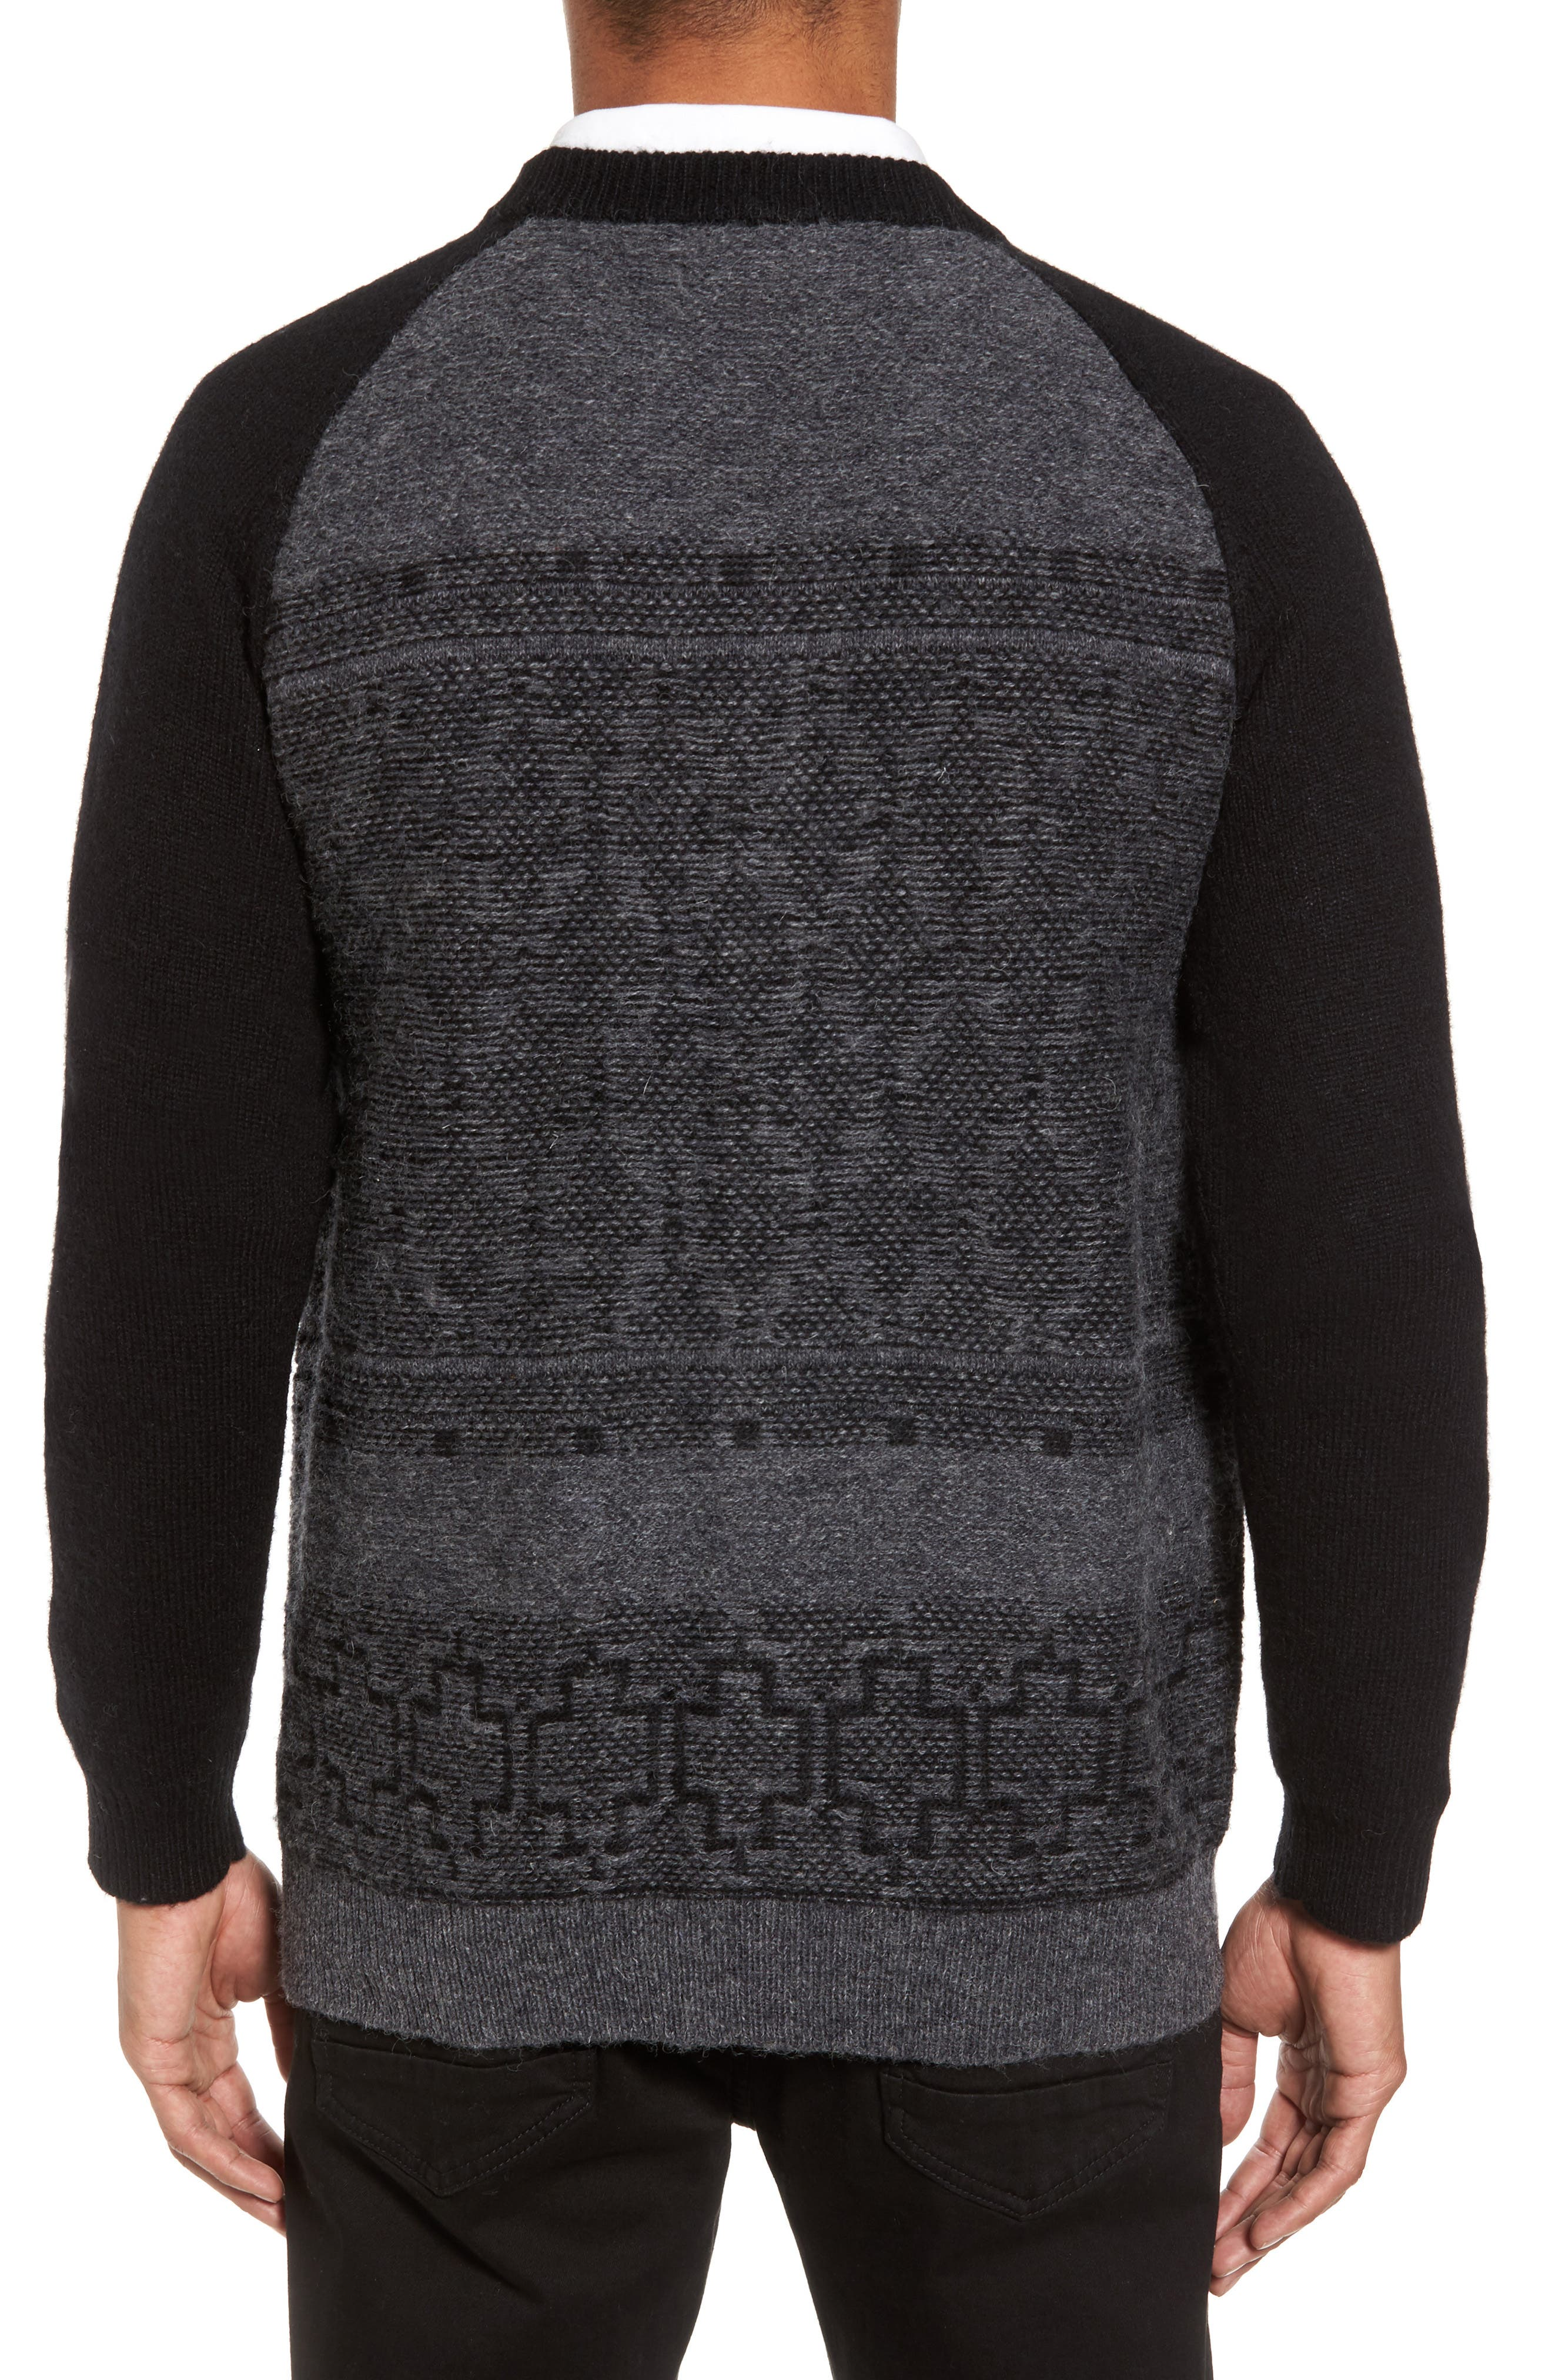 Waverly Cardigan,                             Alternate thumbnail 2, color,                             Grey/ Black